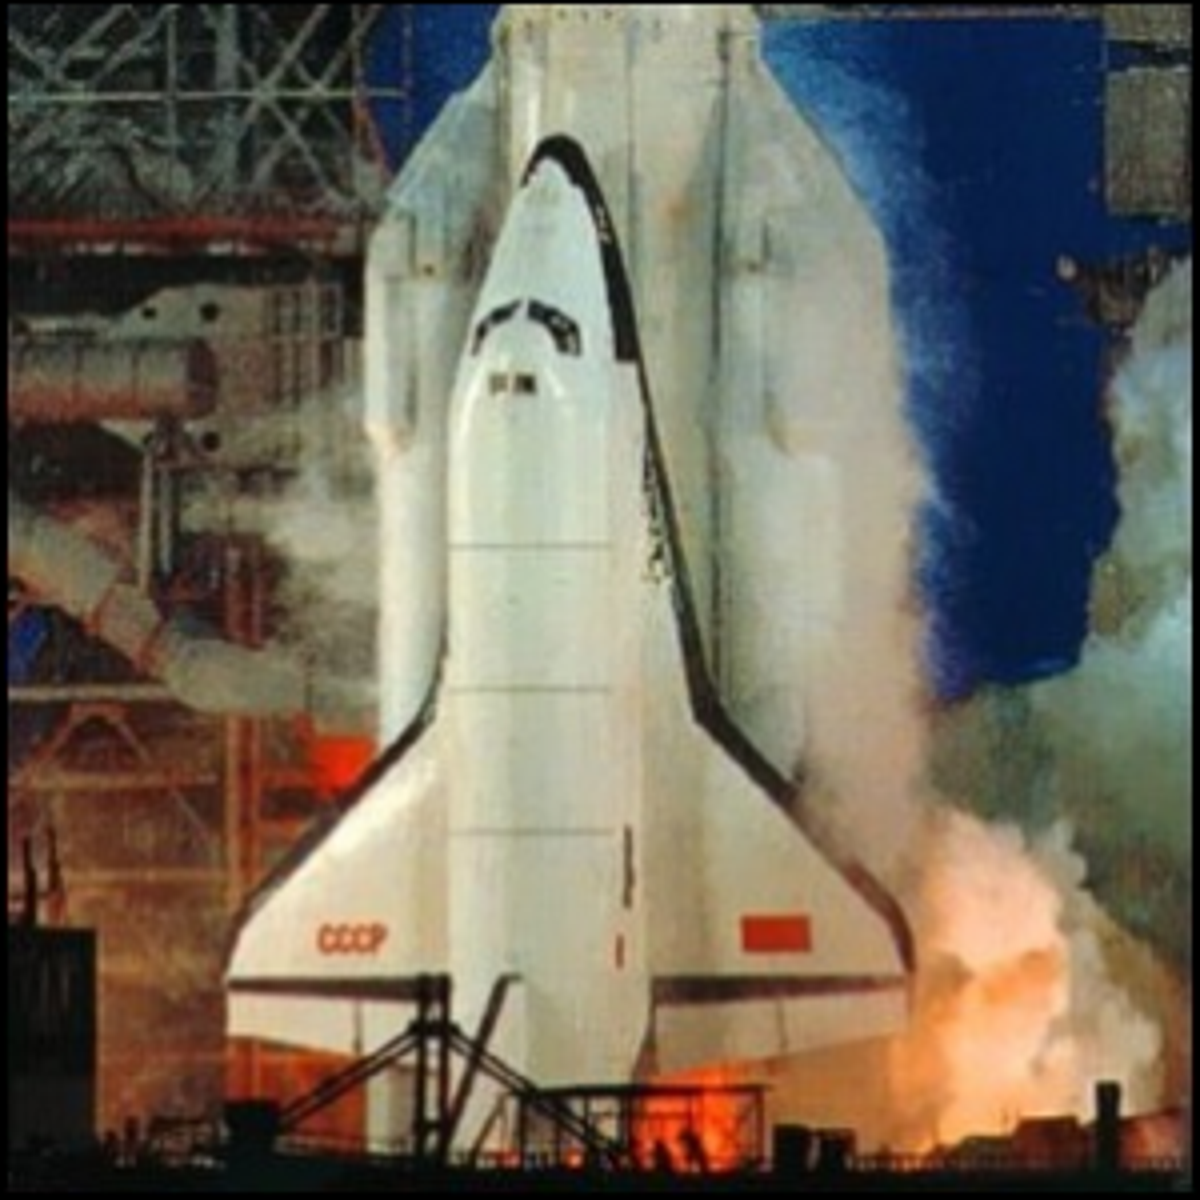 A photo of the only launch of the Buran space shuttle.